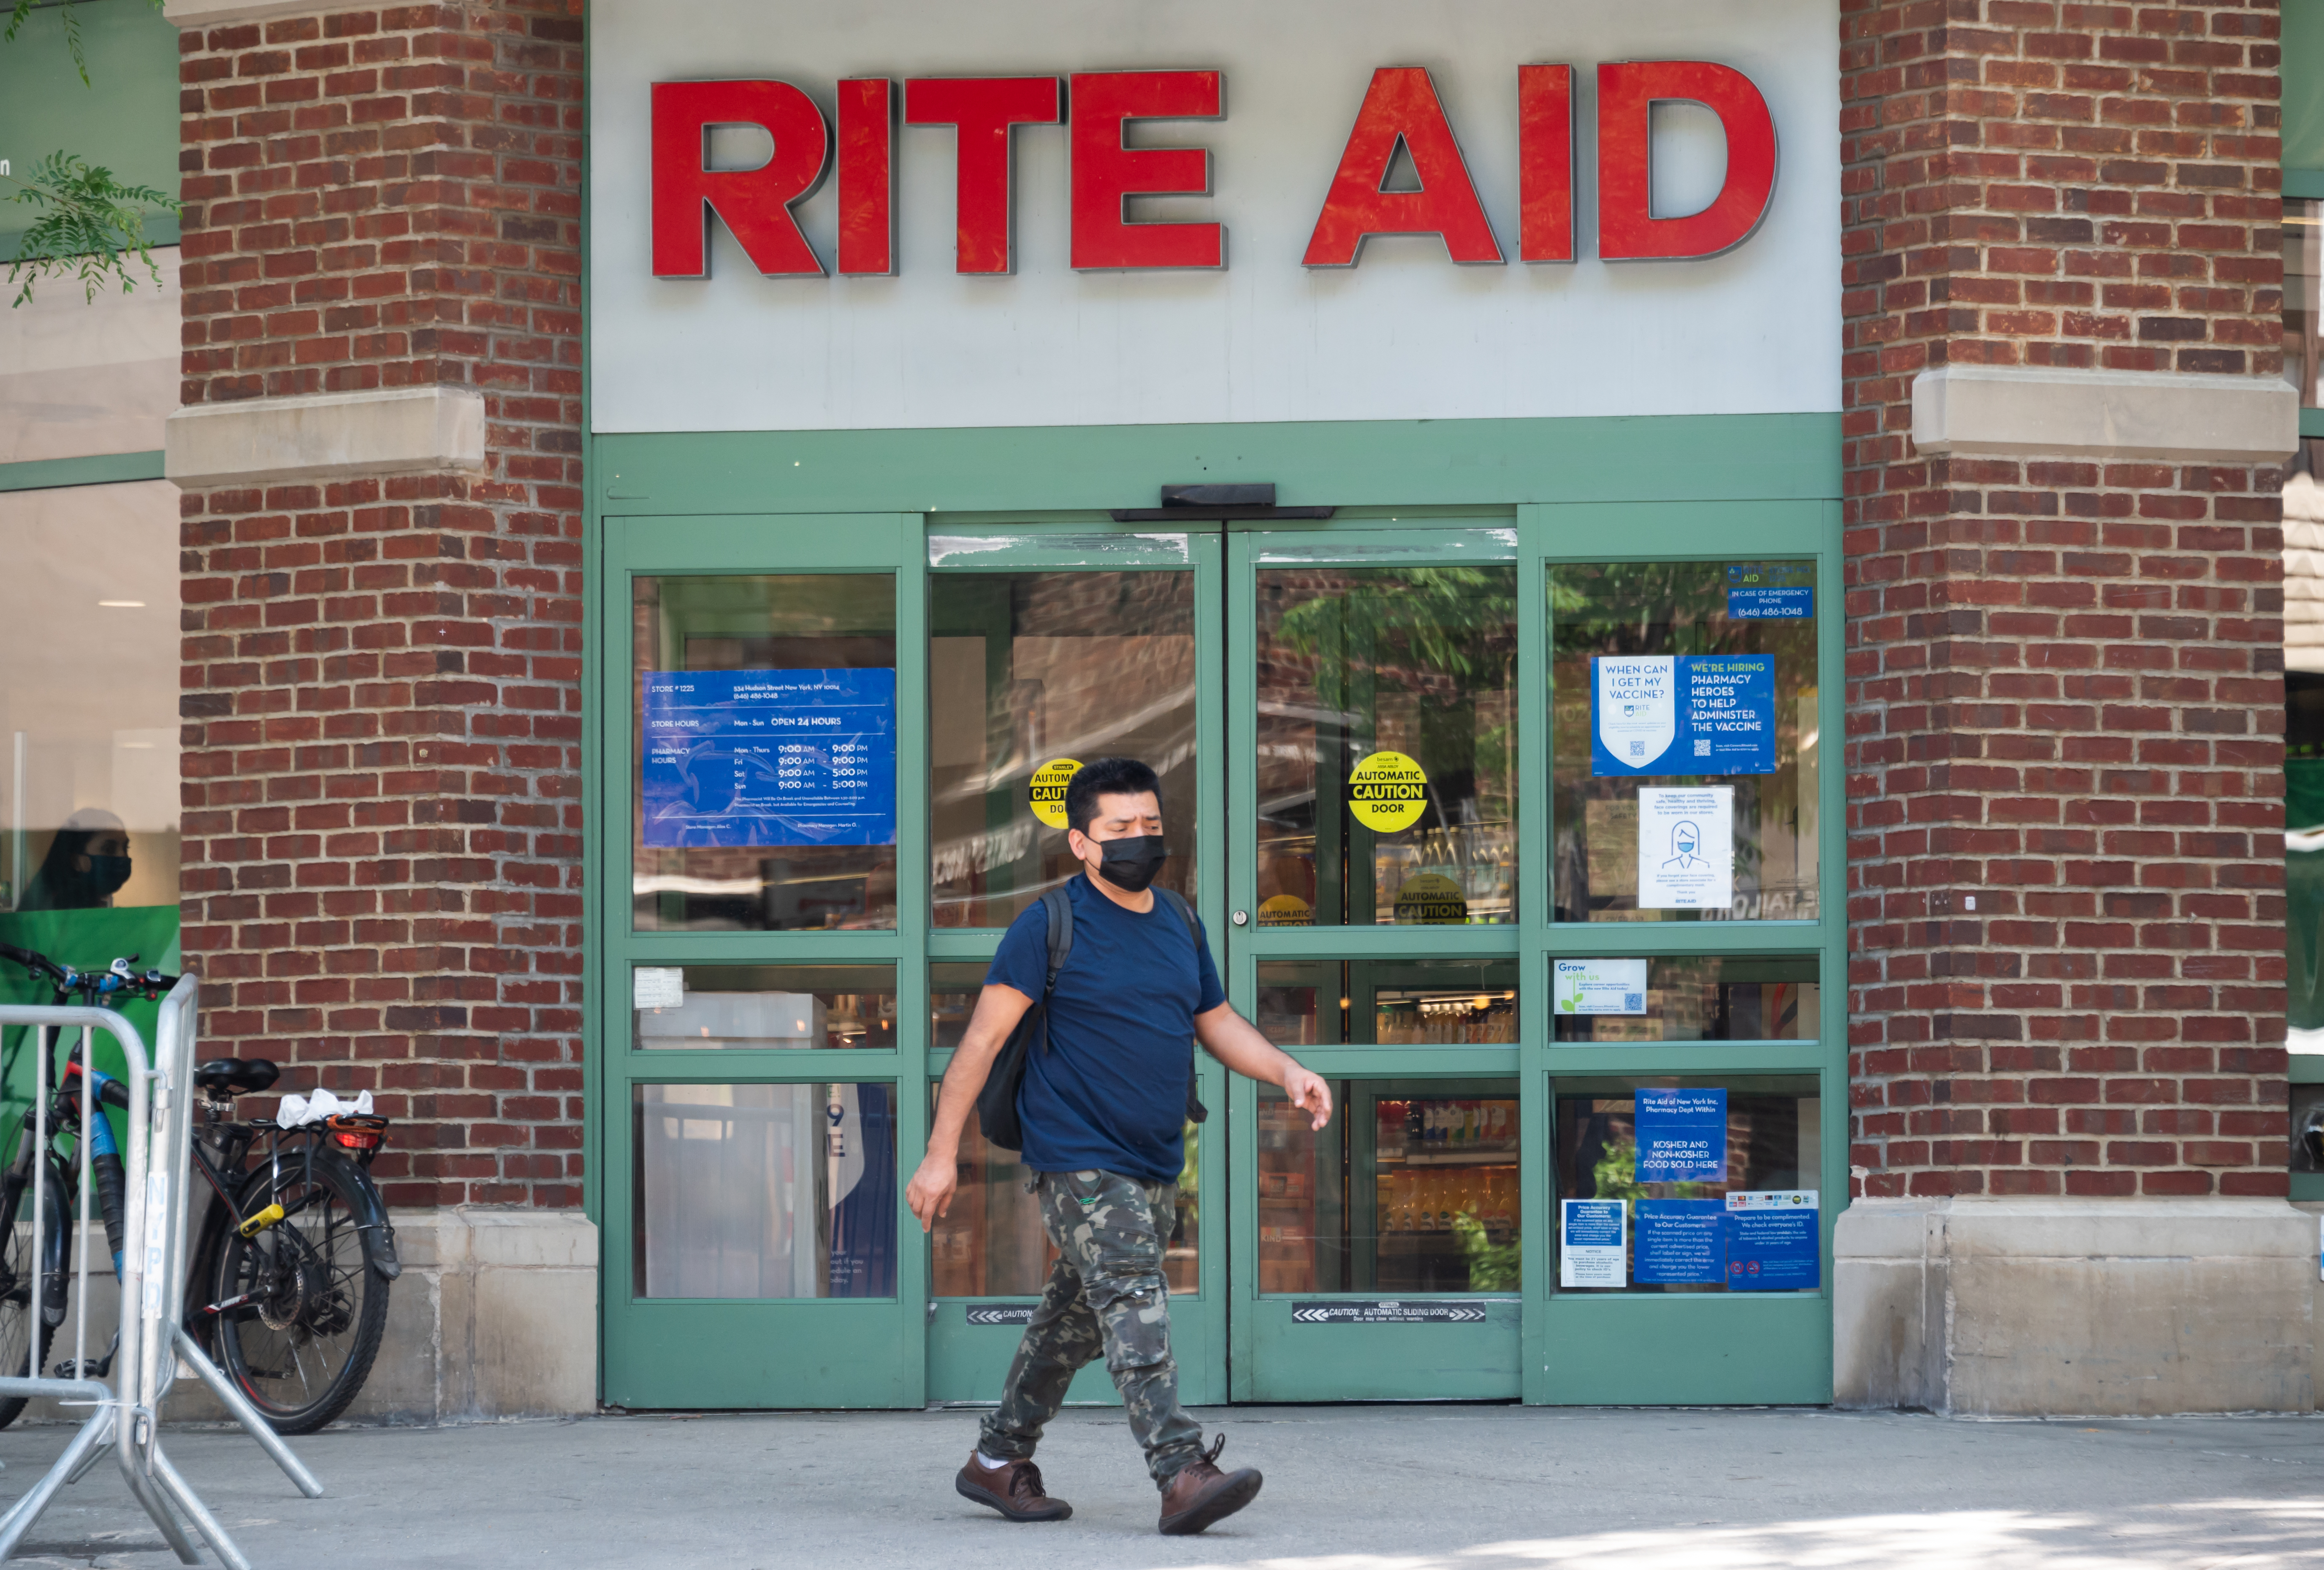 A masked person walks in front of a Rite Aid.